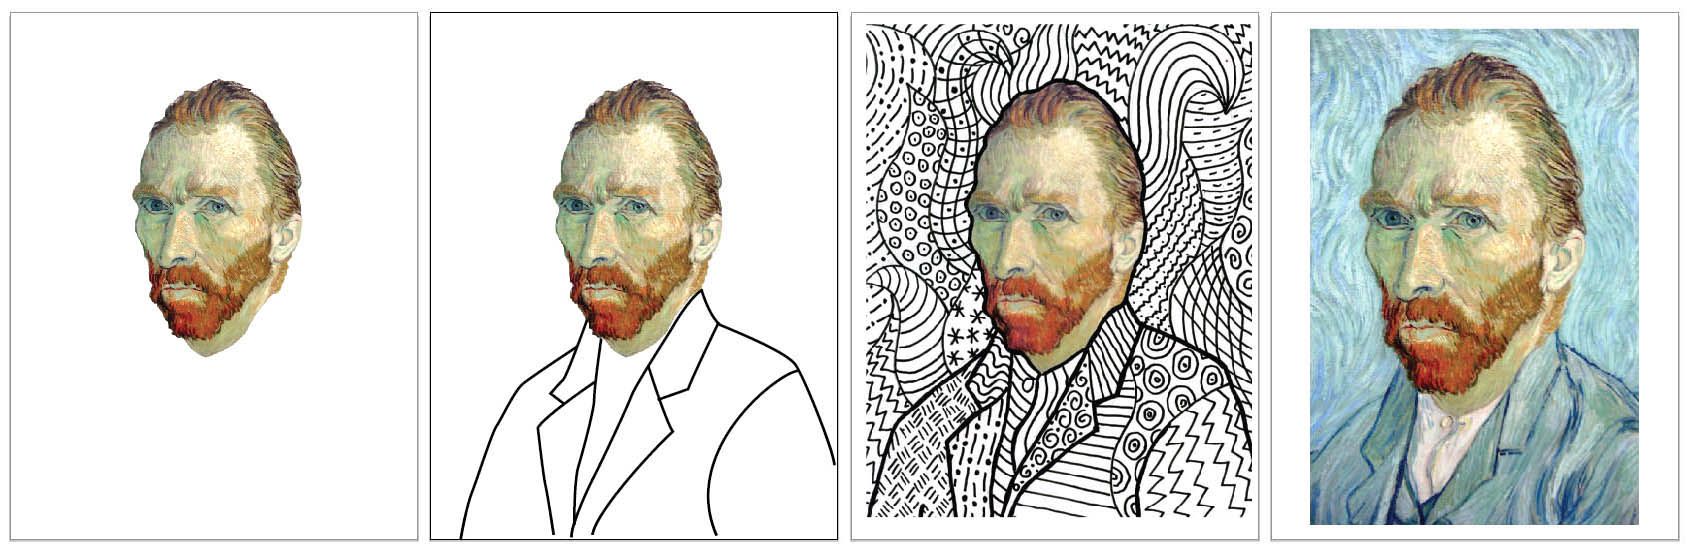 van gogh art projects for kids